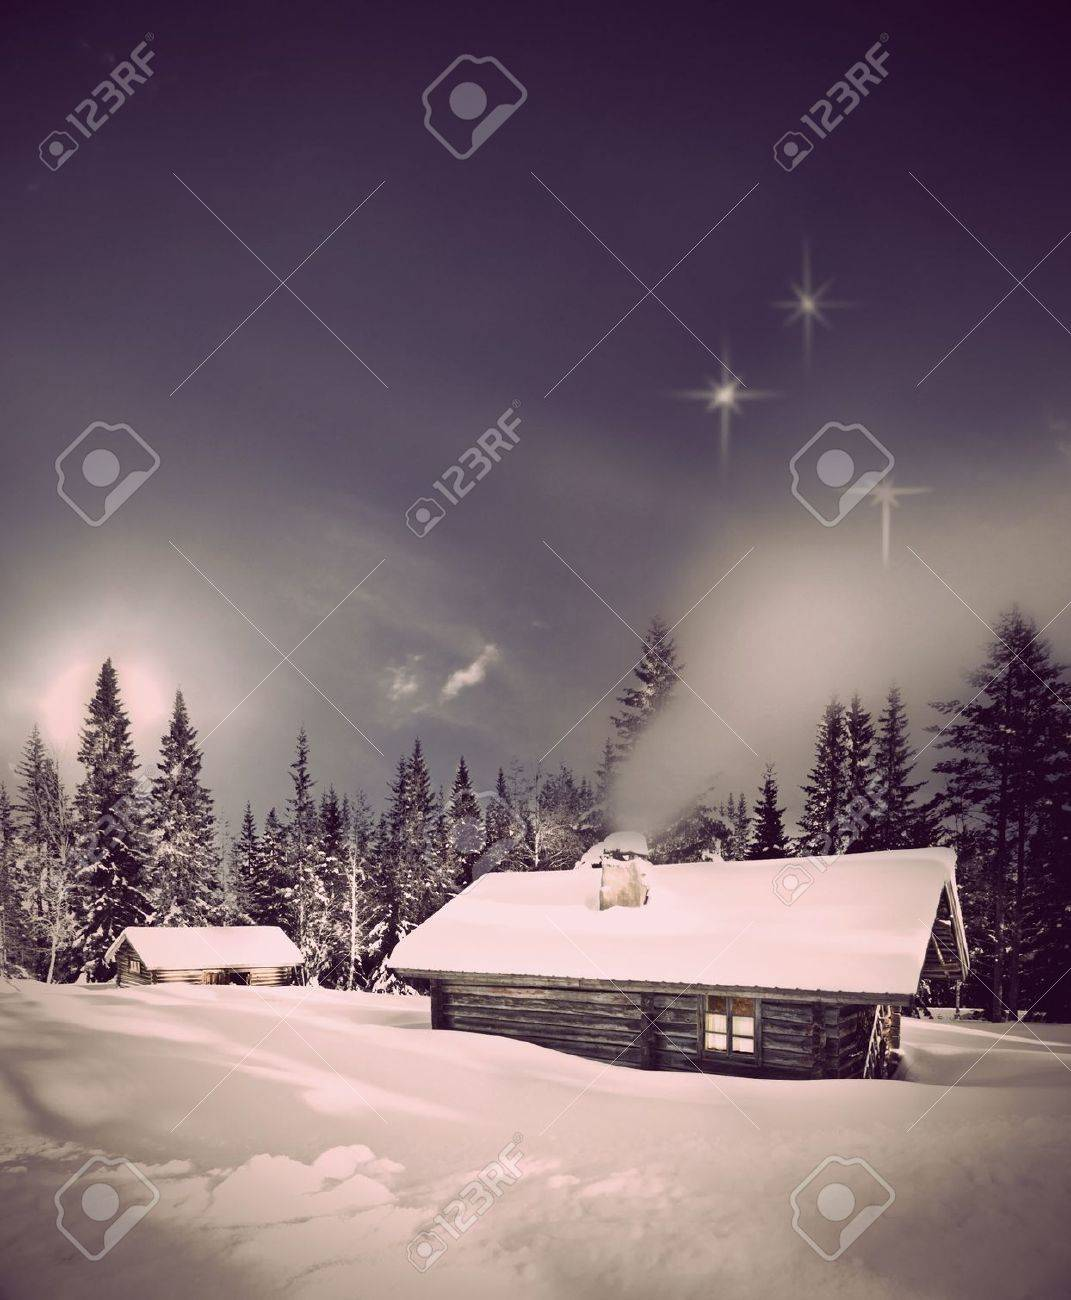 Remote log cabin in winter evening with stars in sky - 11888459